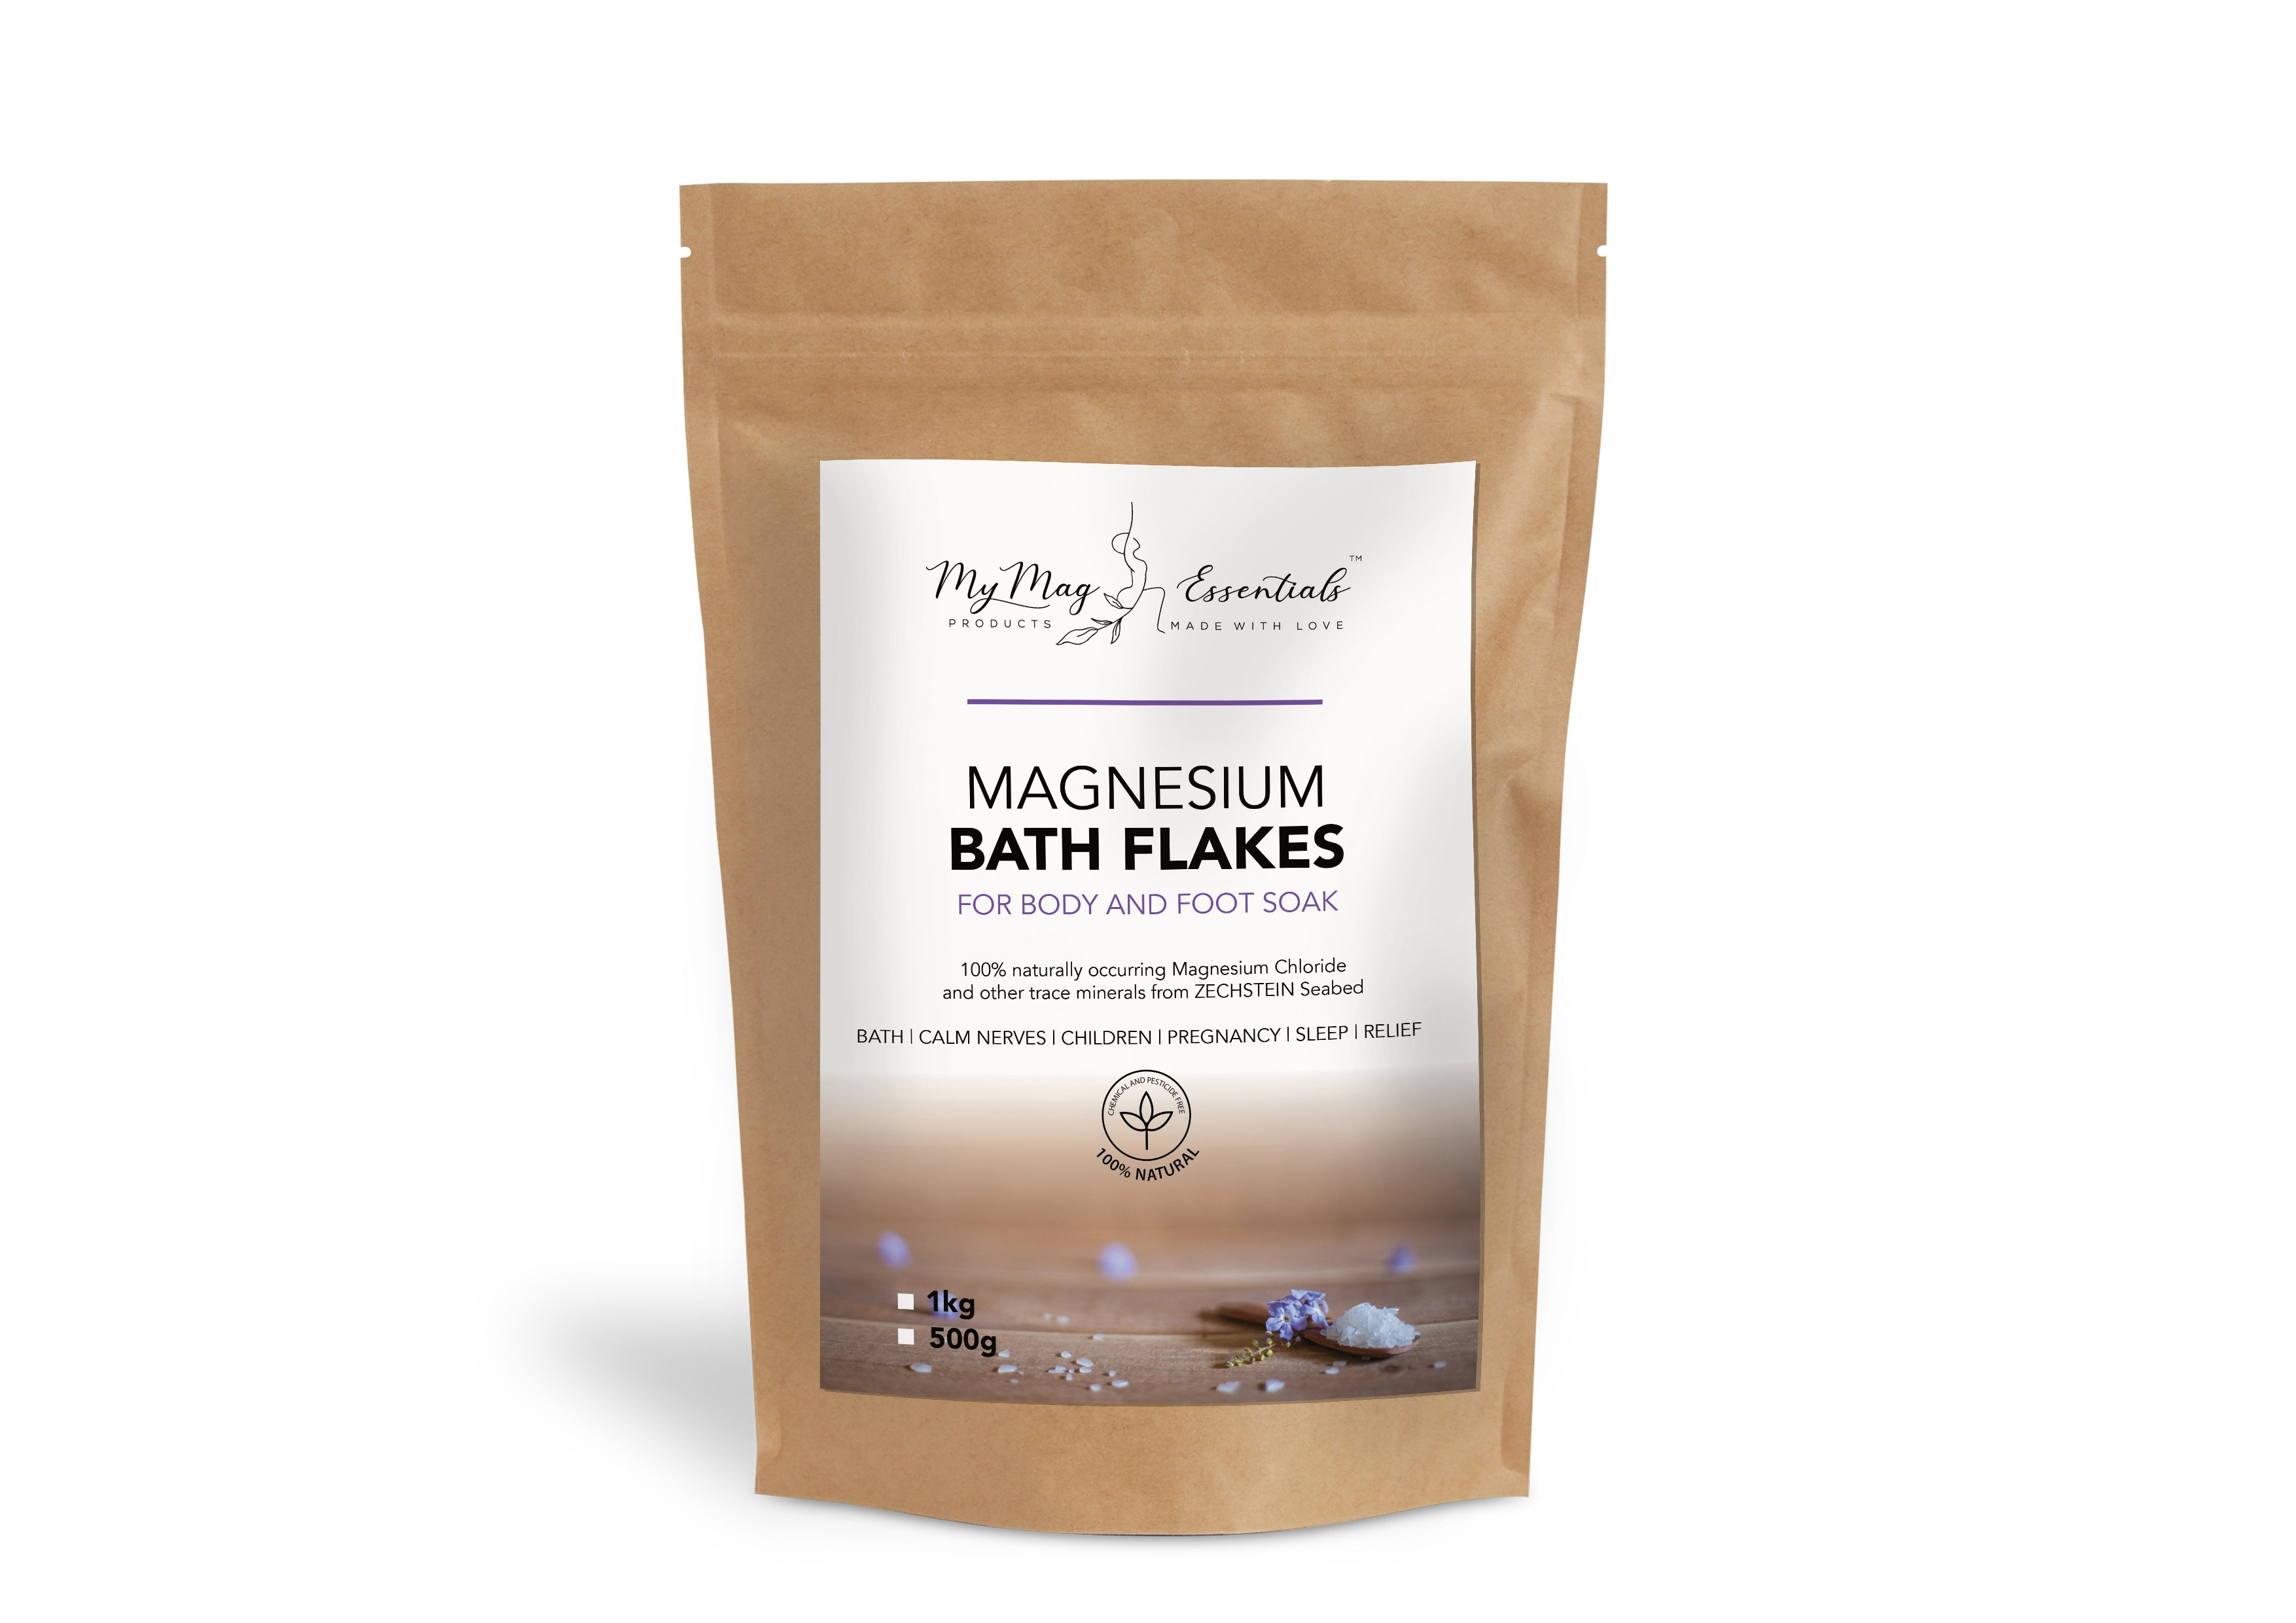 Magnesium Bath Flakes - for Body and Foot Soak 1kg Bag